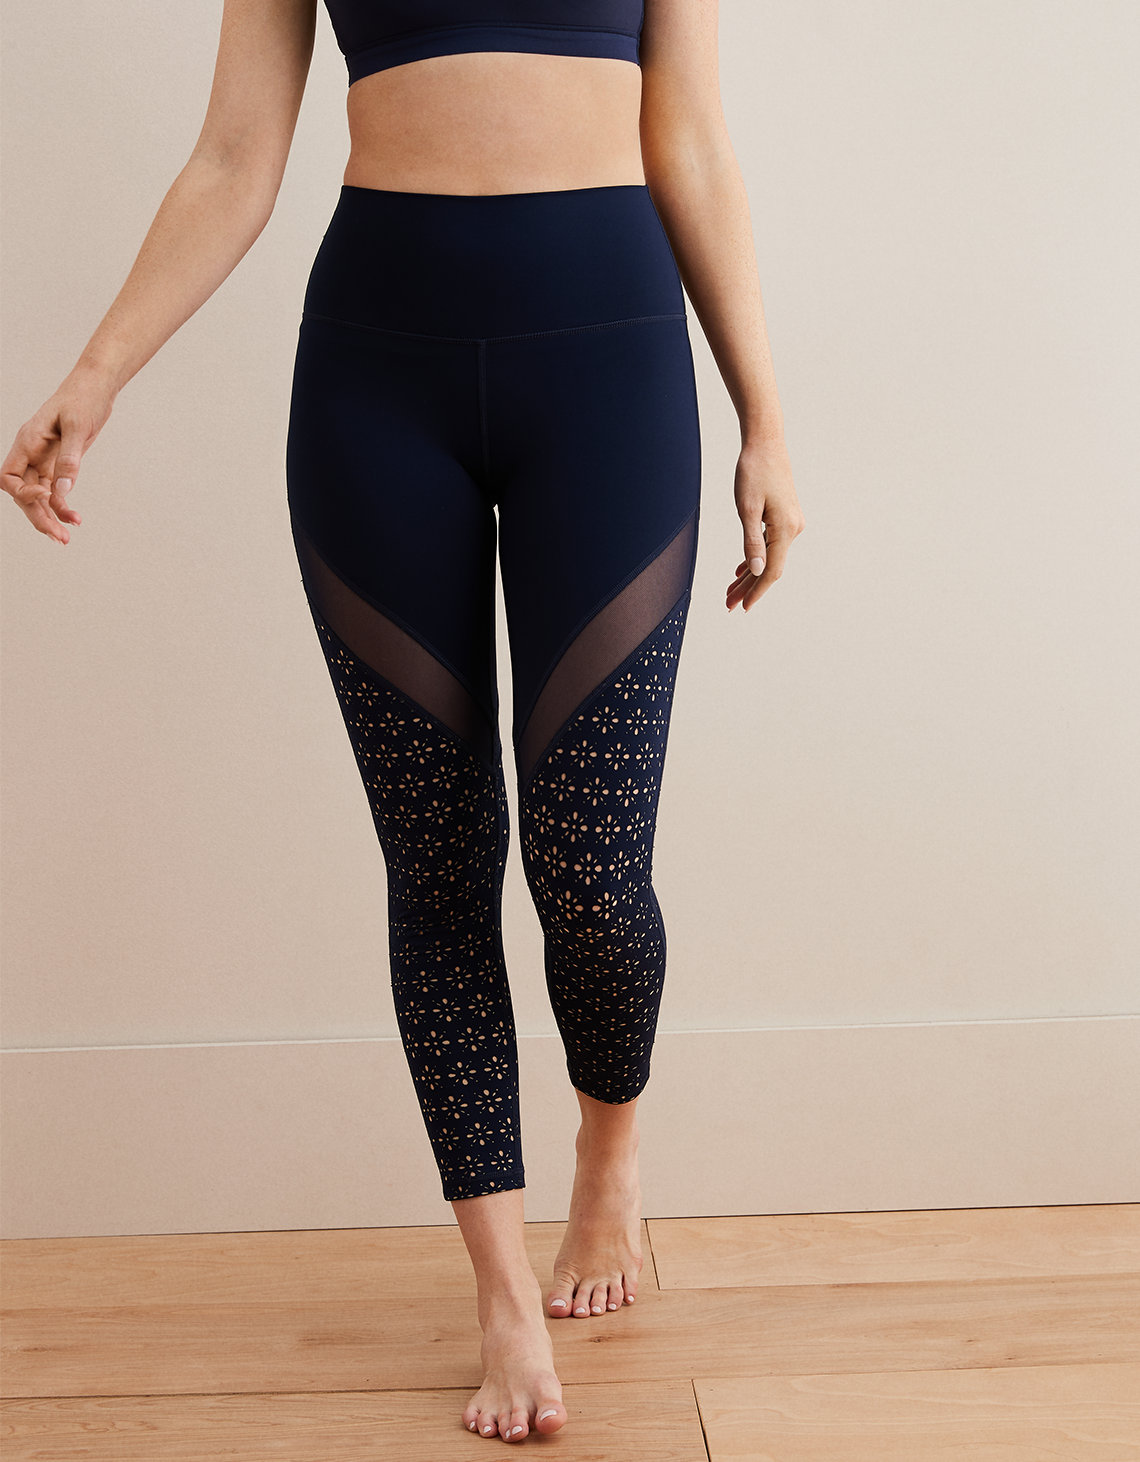 cc6d0c0aee128b Aerie Move High Waisted 7/8 Legging, Navy   American Eagle Outfitters